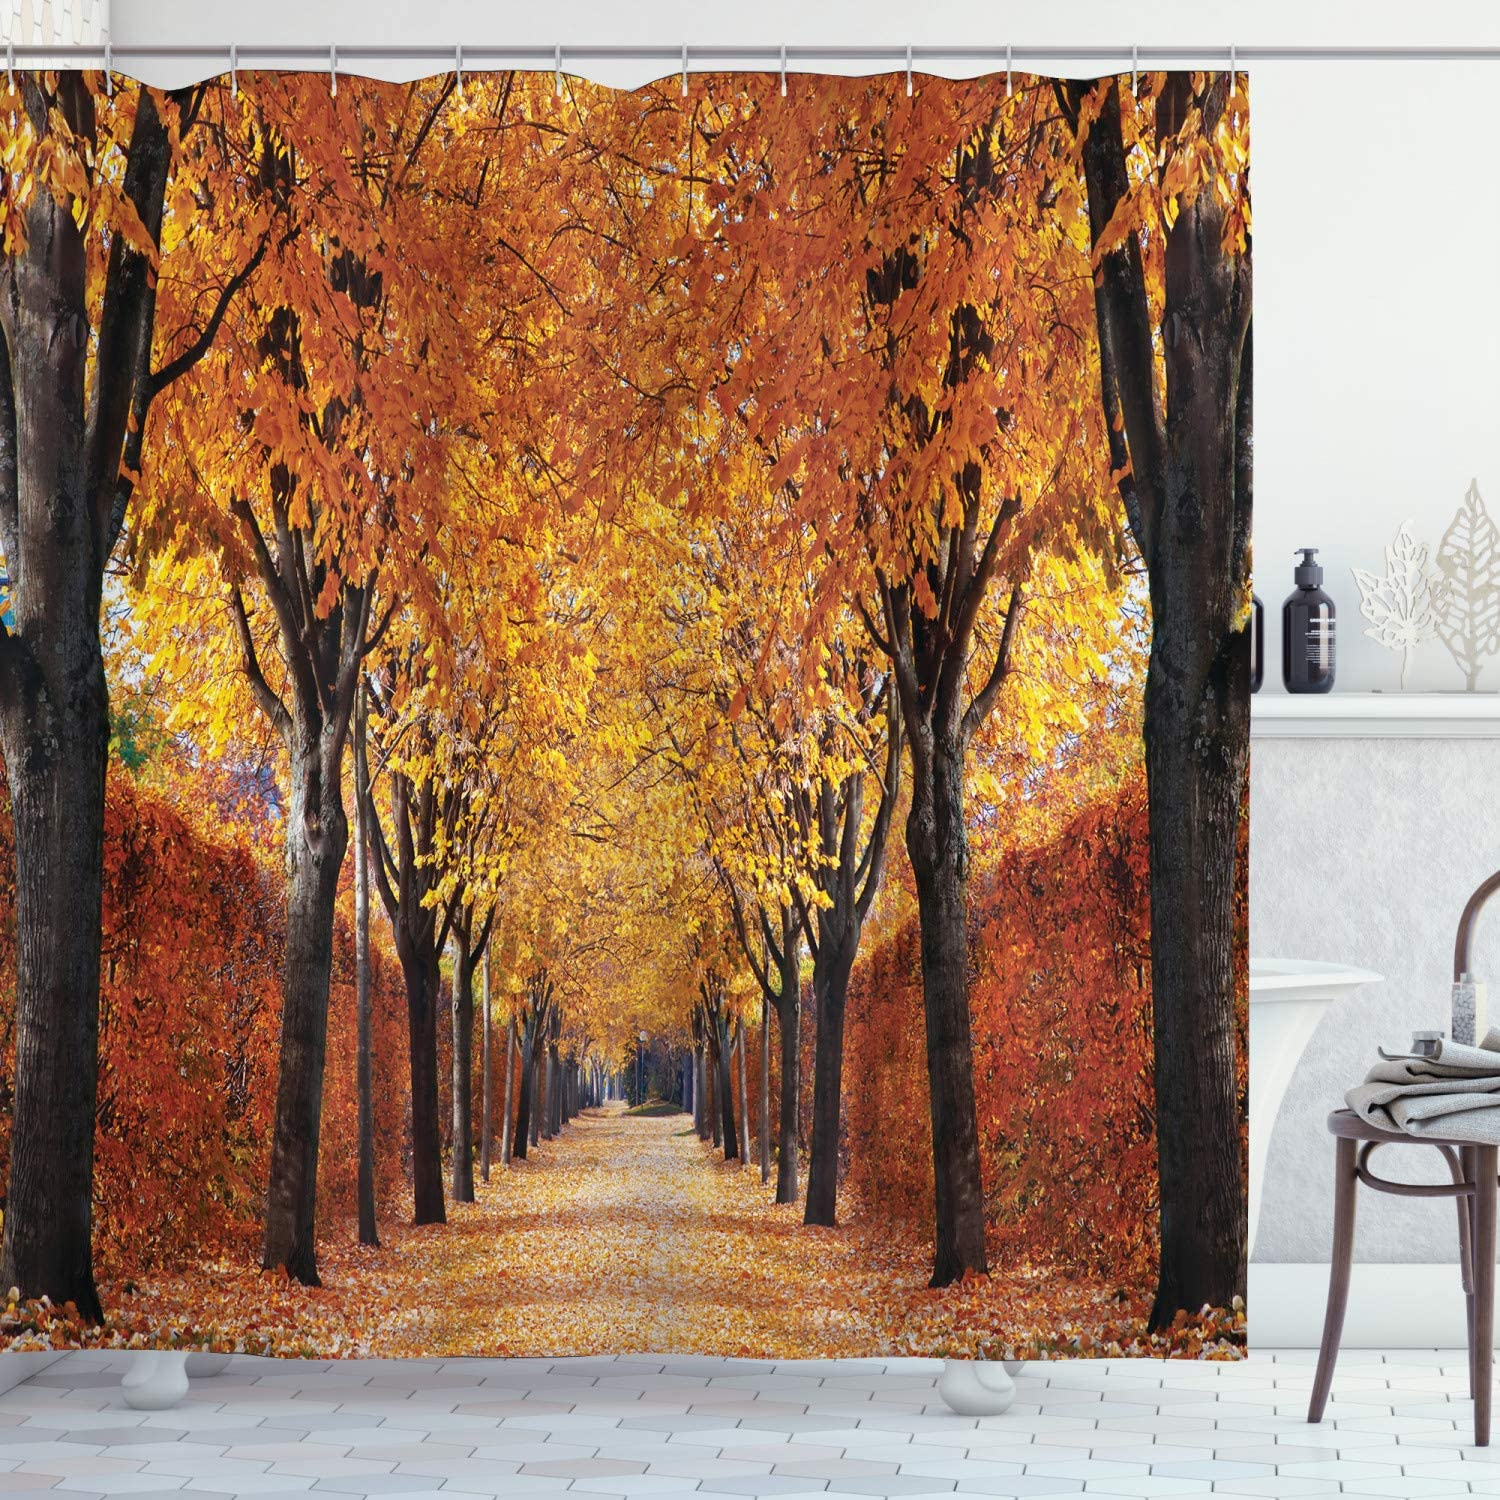 70 Long Ambesonne Autumn Shower Curtain Cloth Fabric Bathroom Decor Set with Hooks Pathway in The Woods Covered with Dried Deciduous Tree Leaves Romantic Fall Season Orange Brown